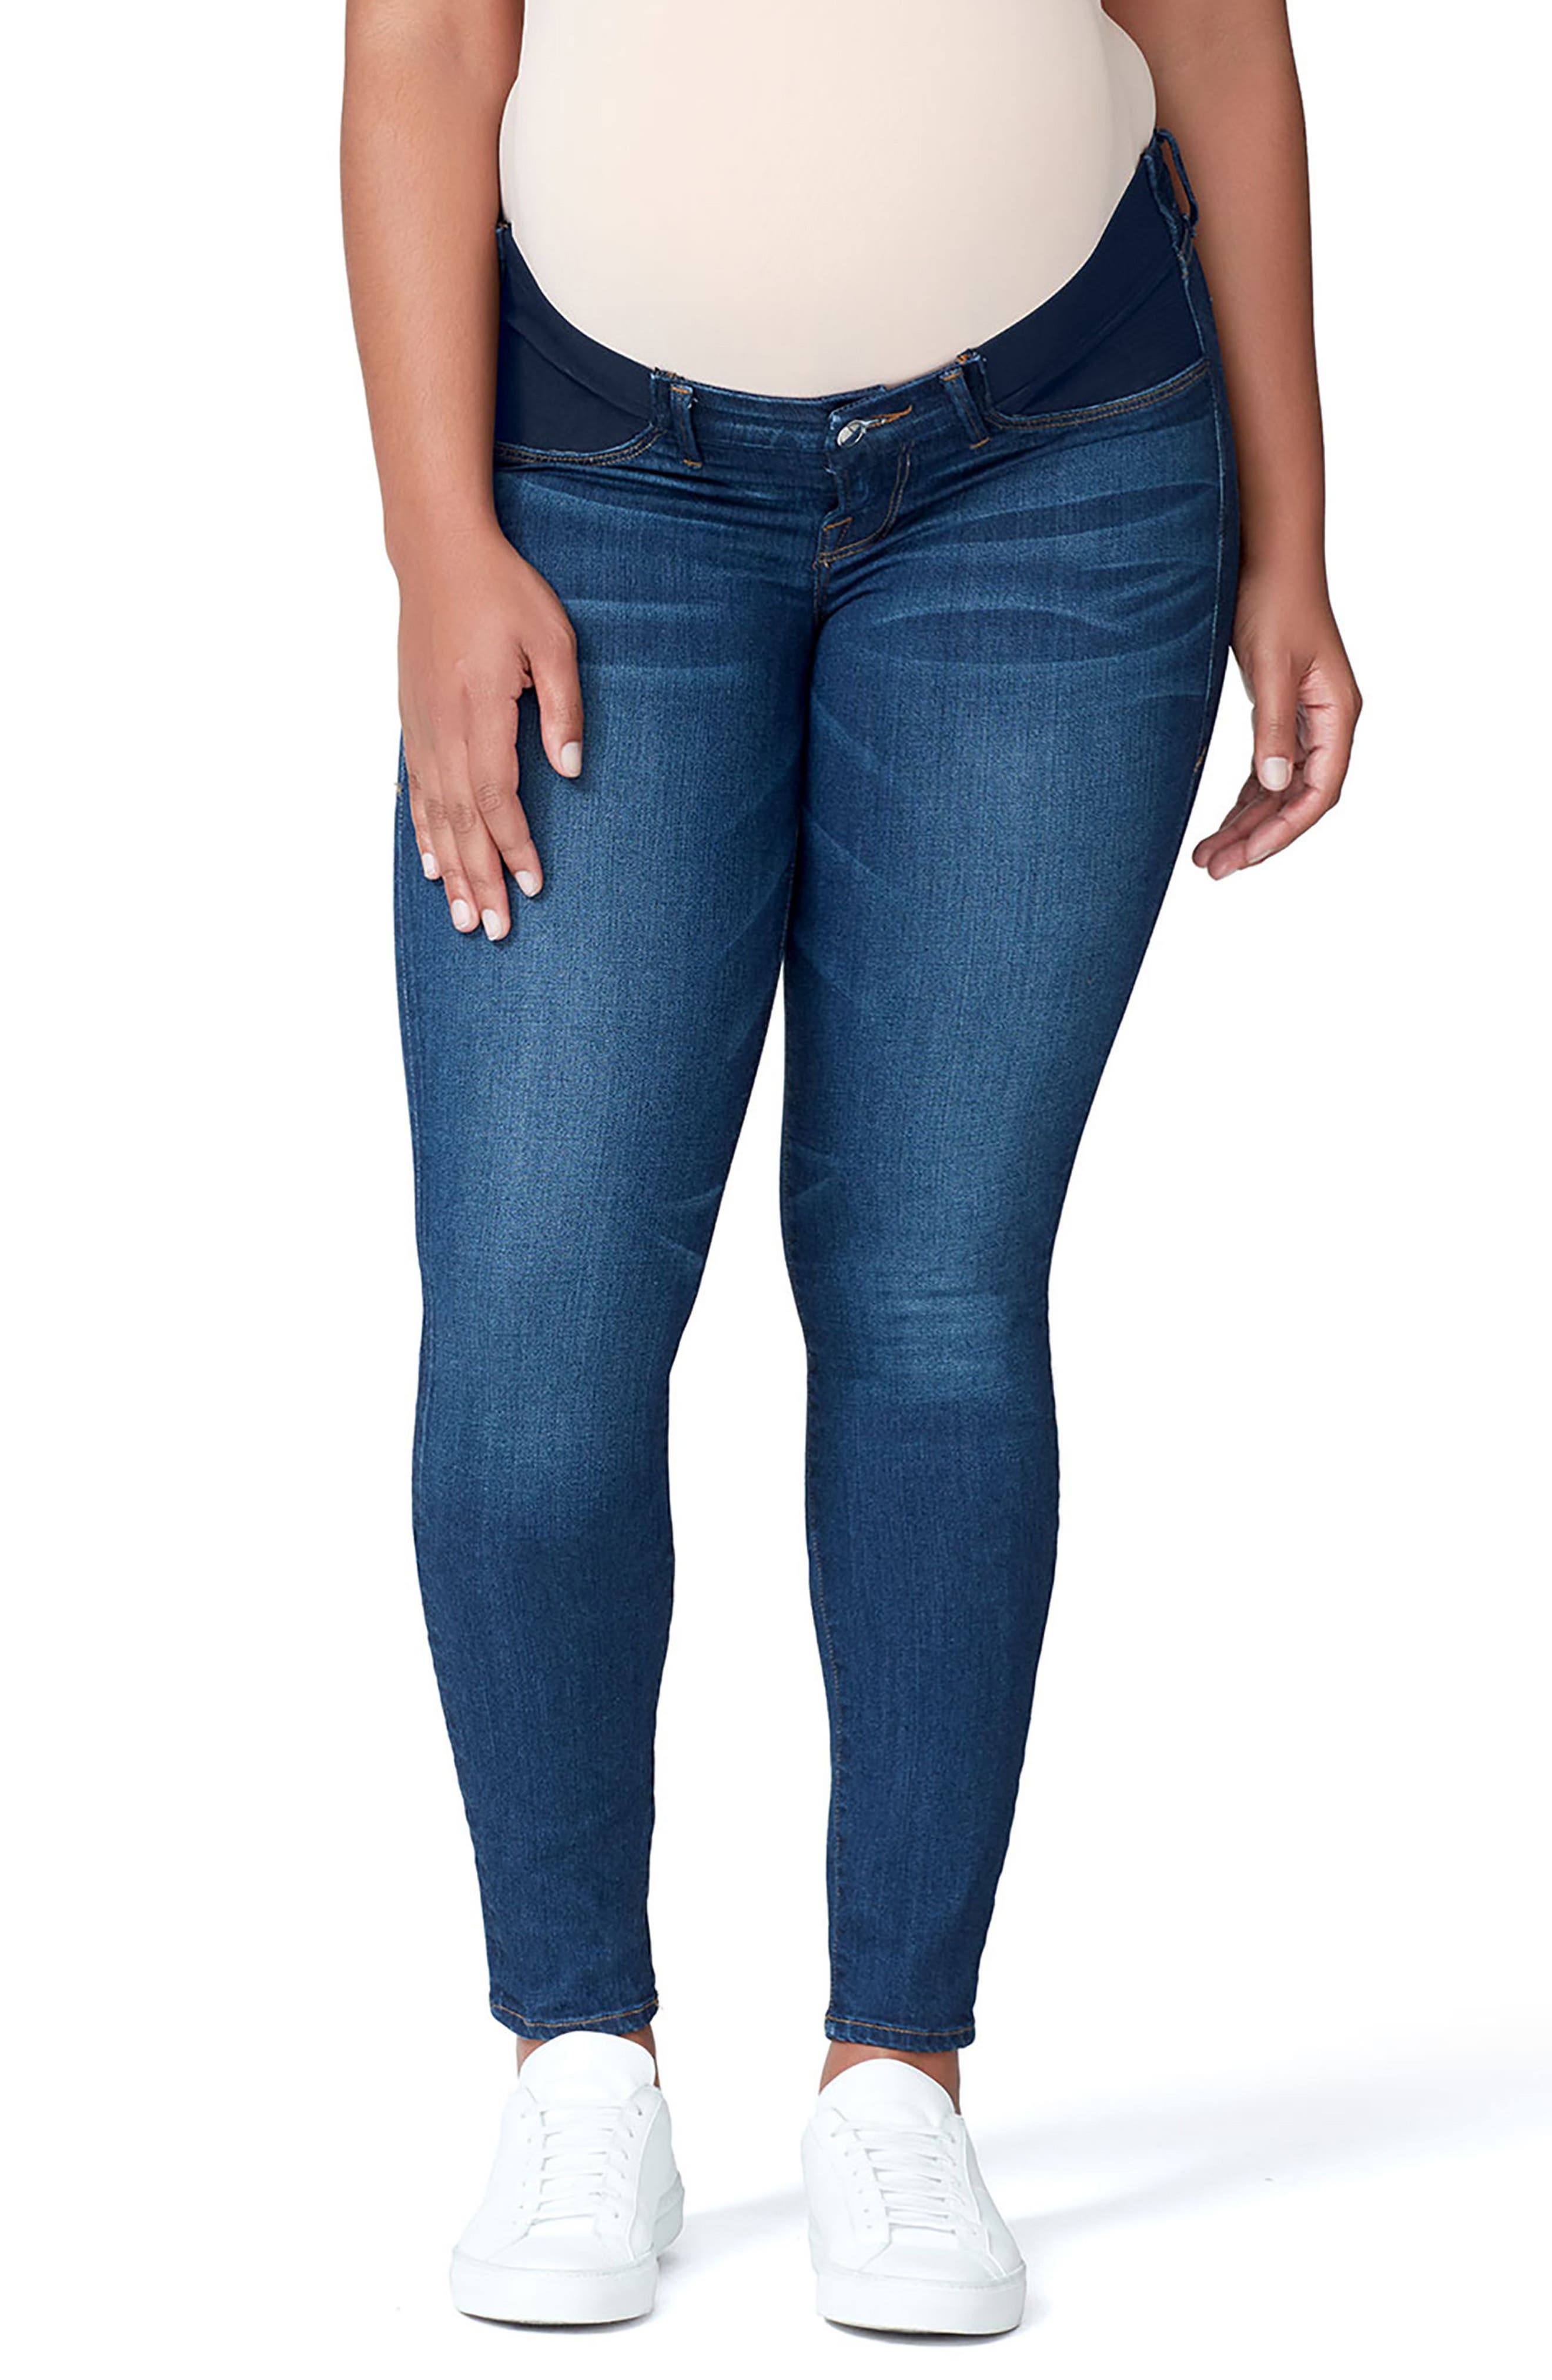 Women's Good American Good Mama The Honeymoon Low Rise Maternity Skinny Jeans